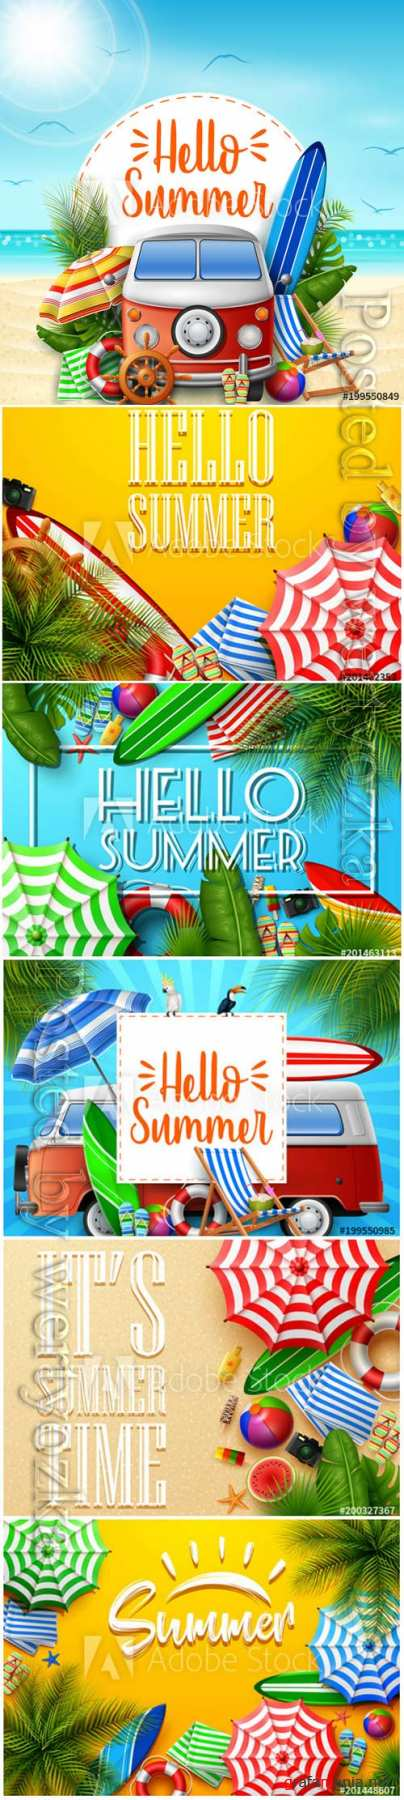 Hello summer vector banner, tropical leaves and beach element collections